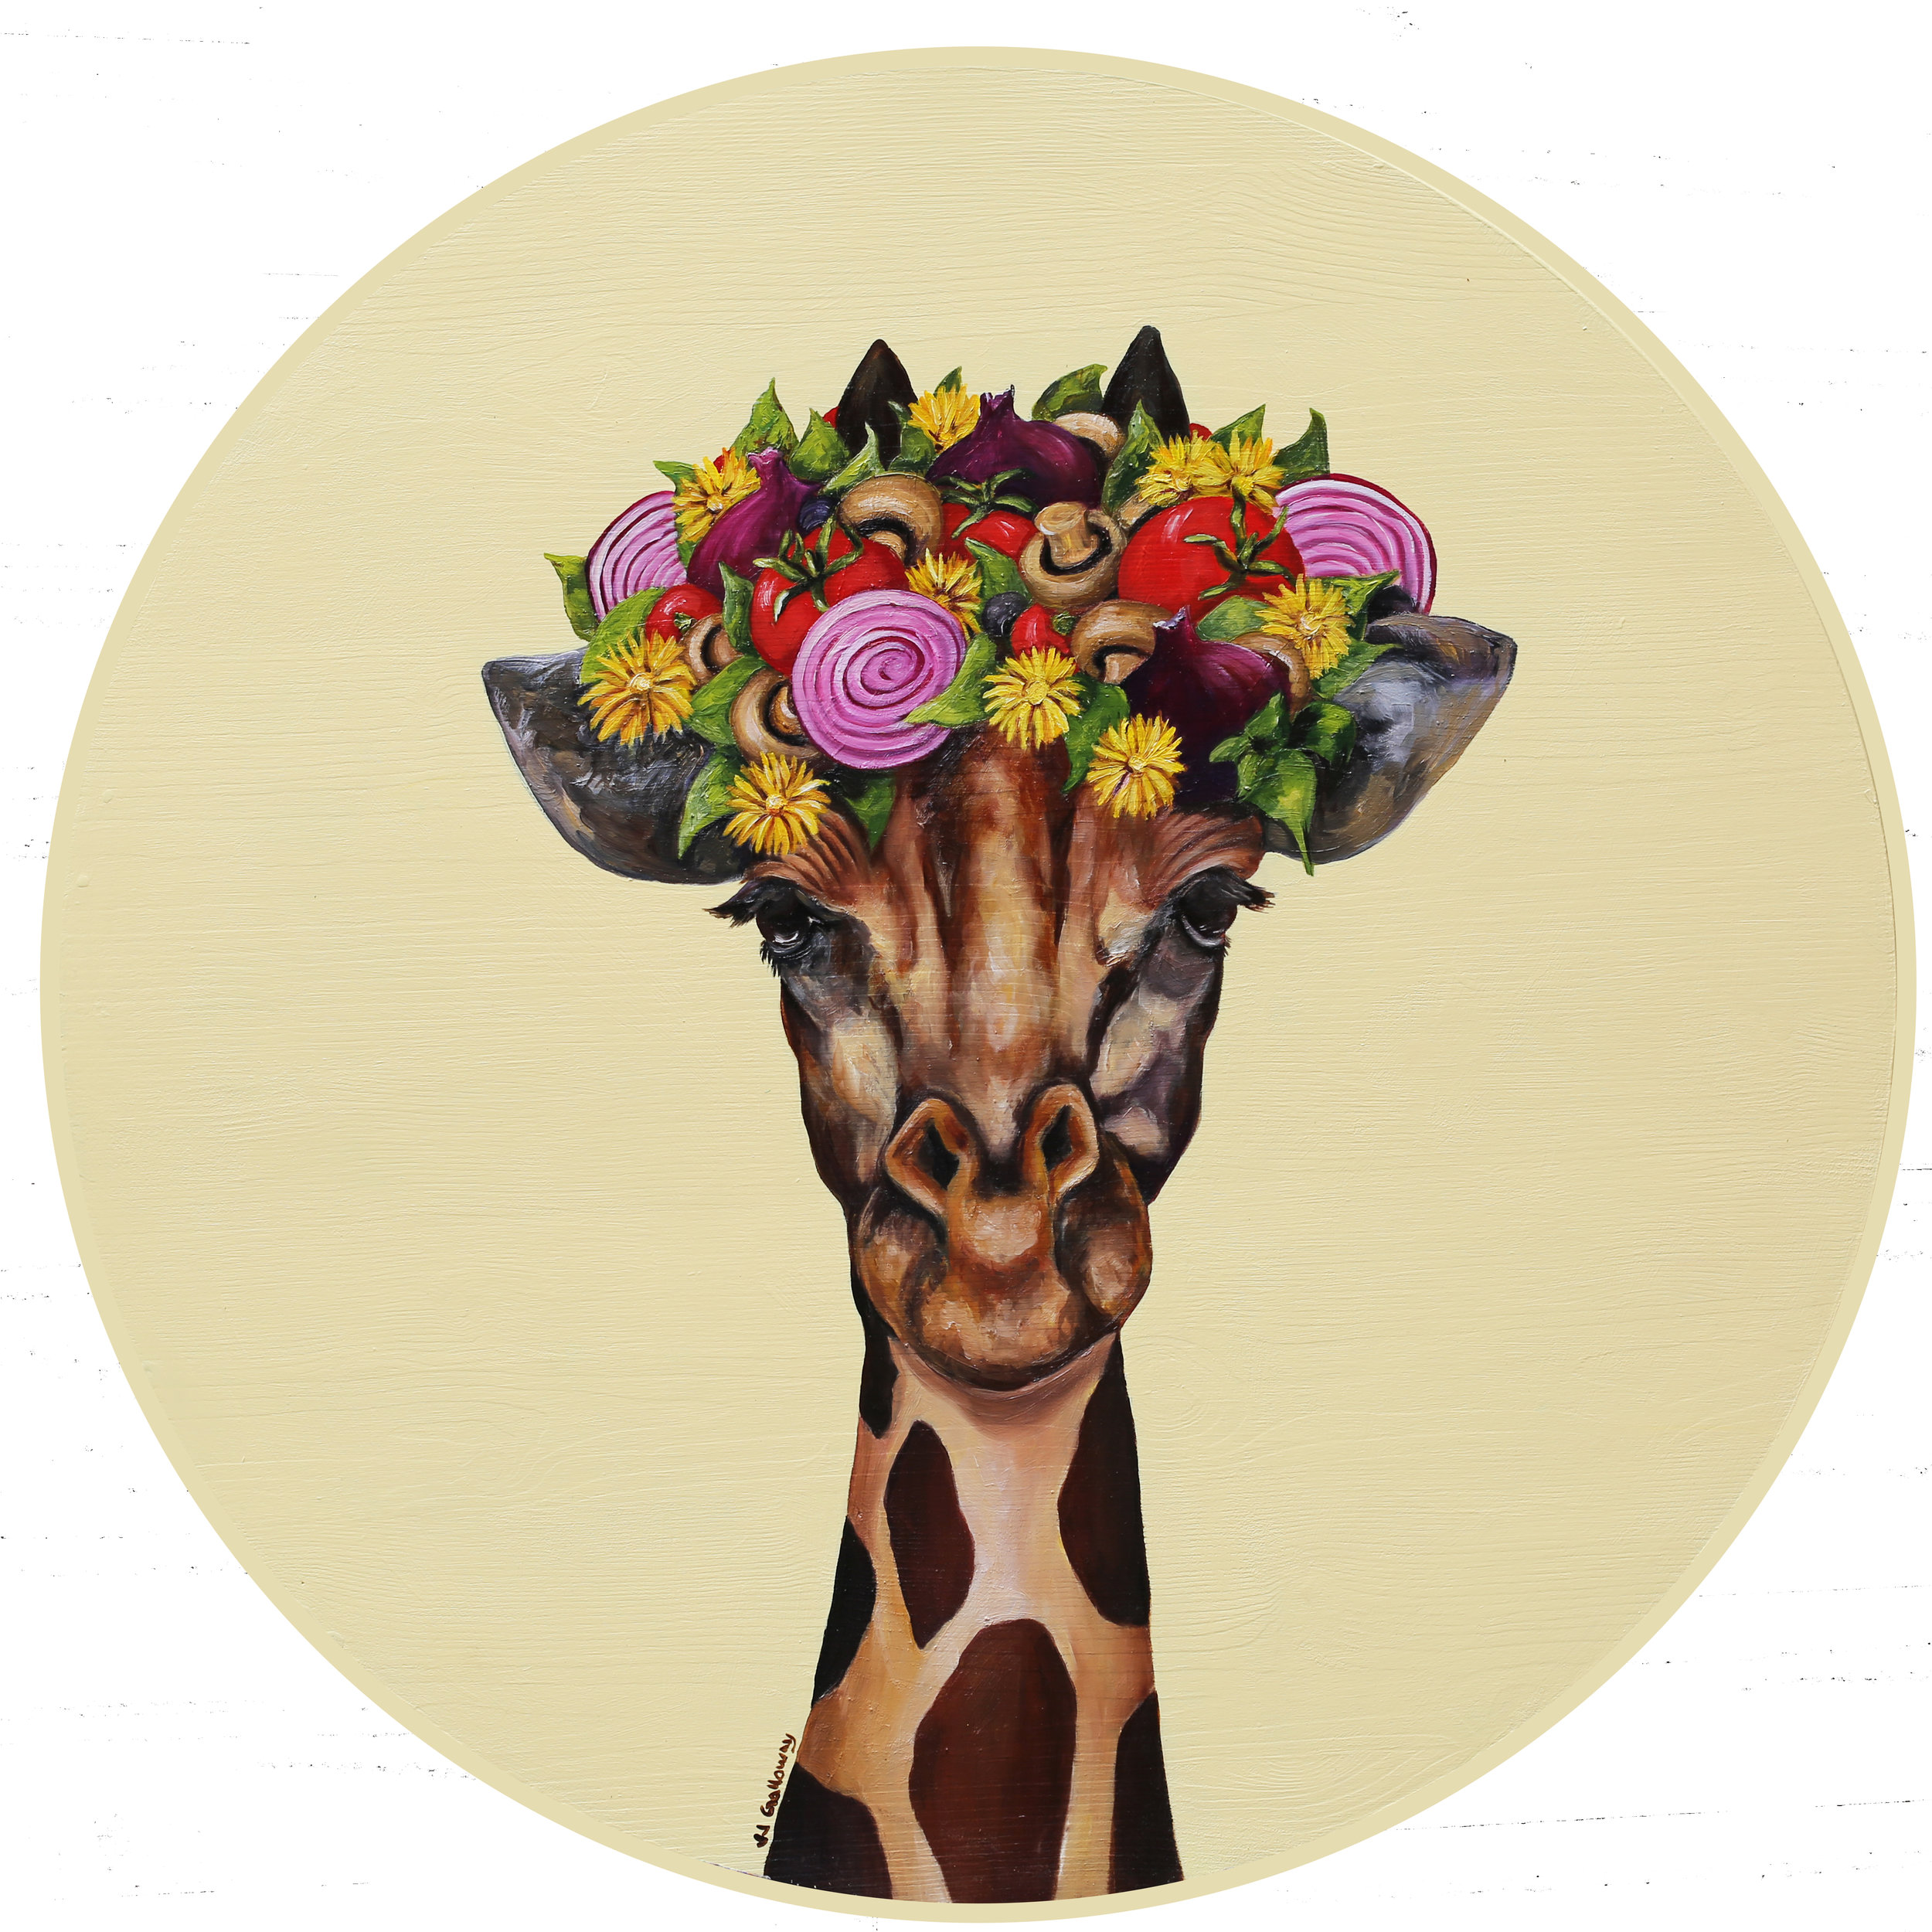 Giraffe with a Pizza Flower Crown.jpg